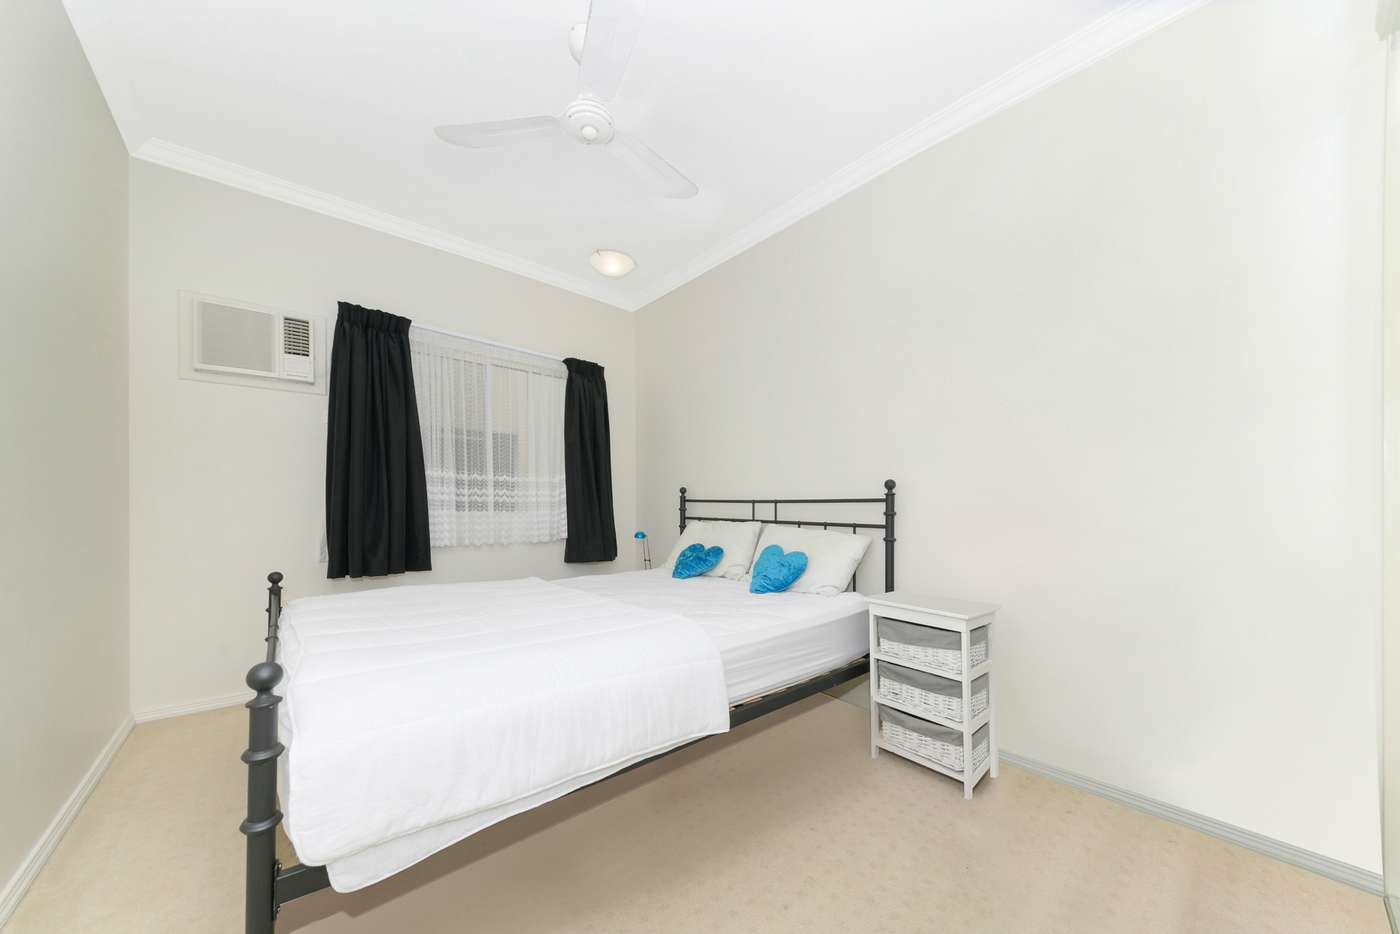 Sixth view of Homely apartment listing, 11/18 The Strand, North Ward QLD 4810